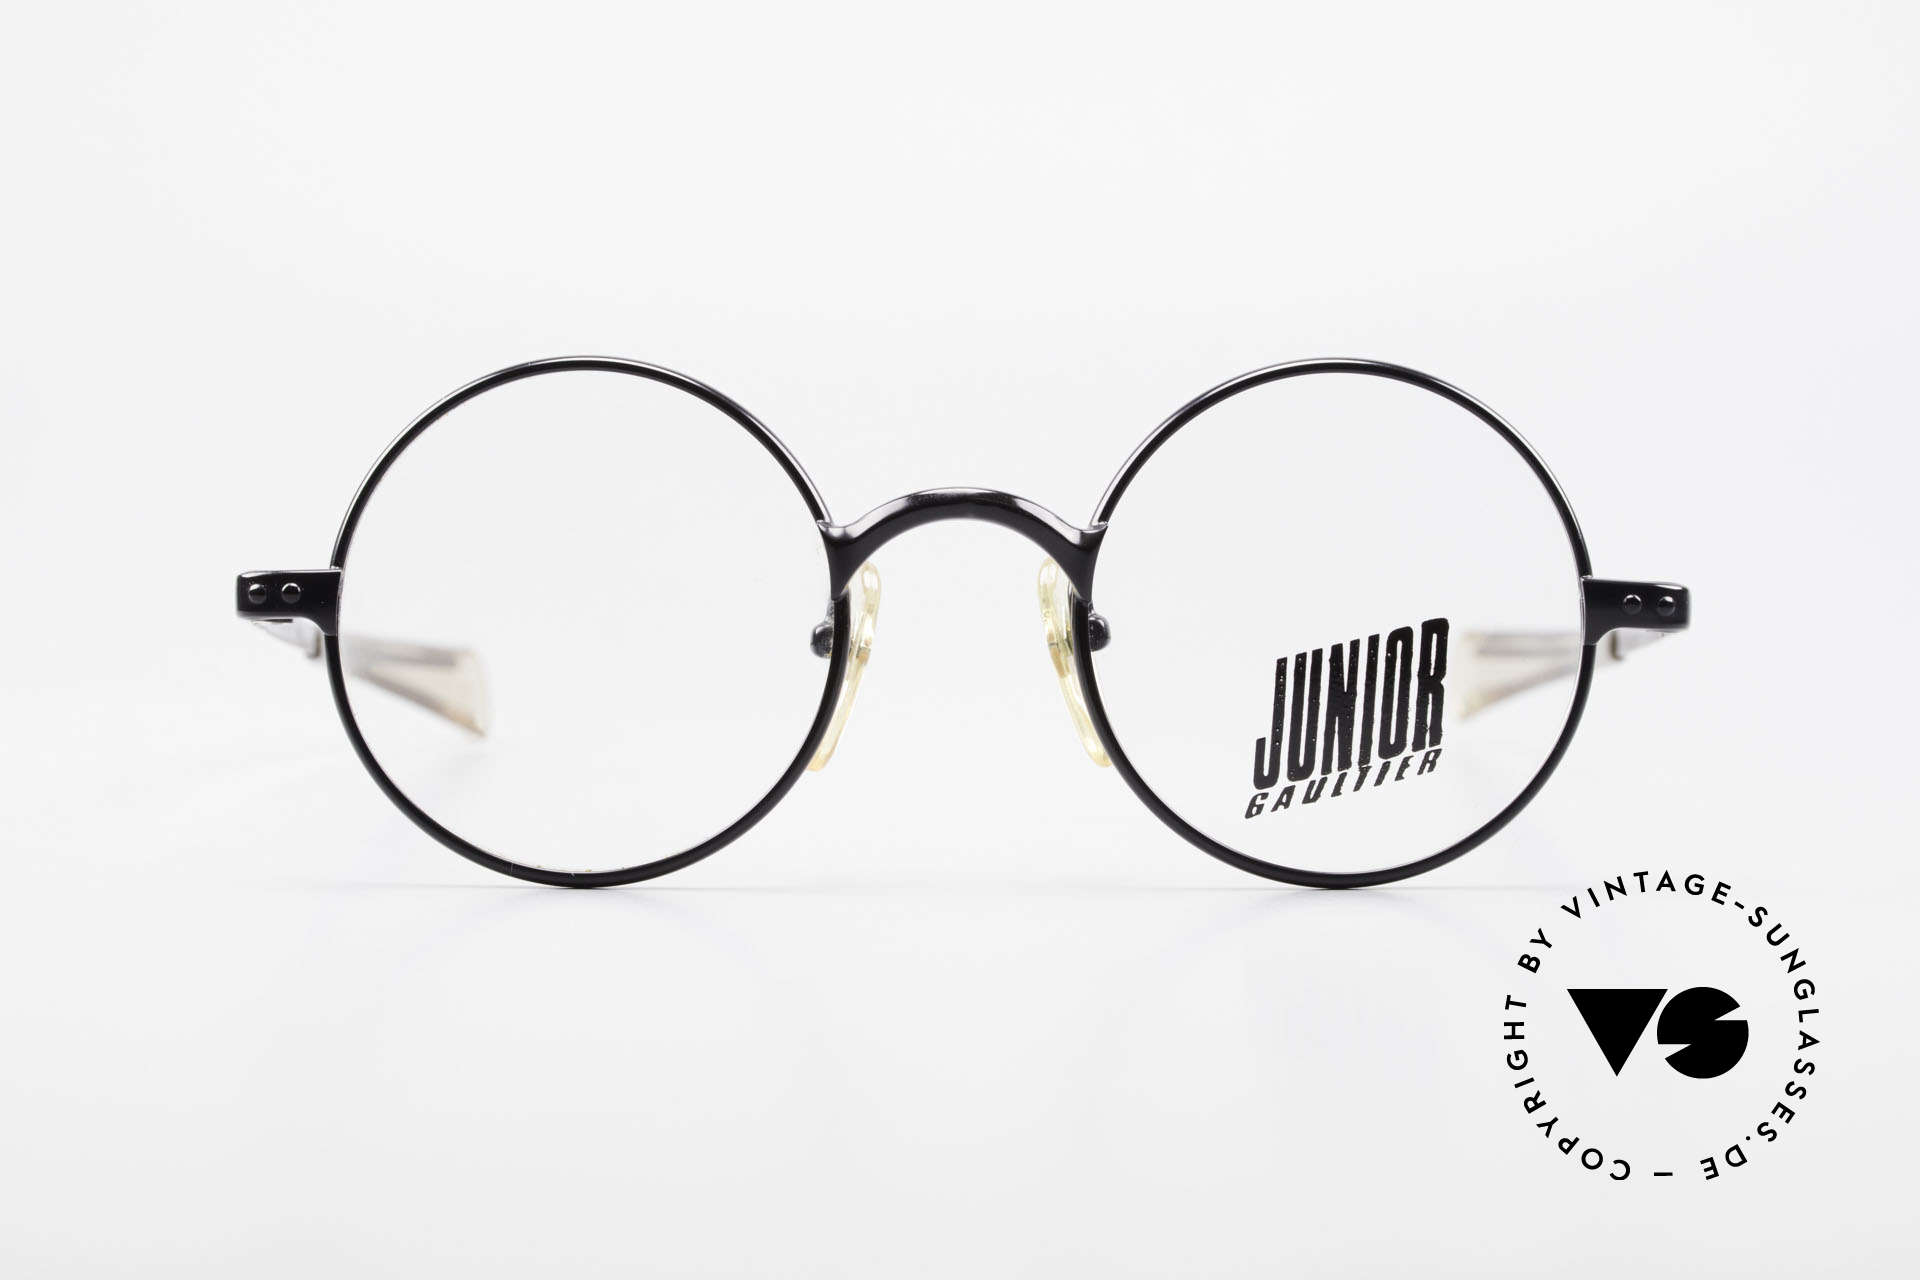 Jean Paul Gaultier 57-0173 Round Glasses Junior Gaultier, one of the top models of the Junior Gaultier Series, Made for Men and Women